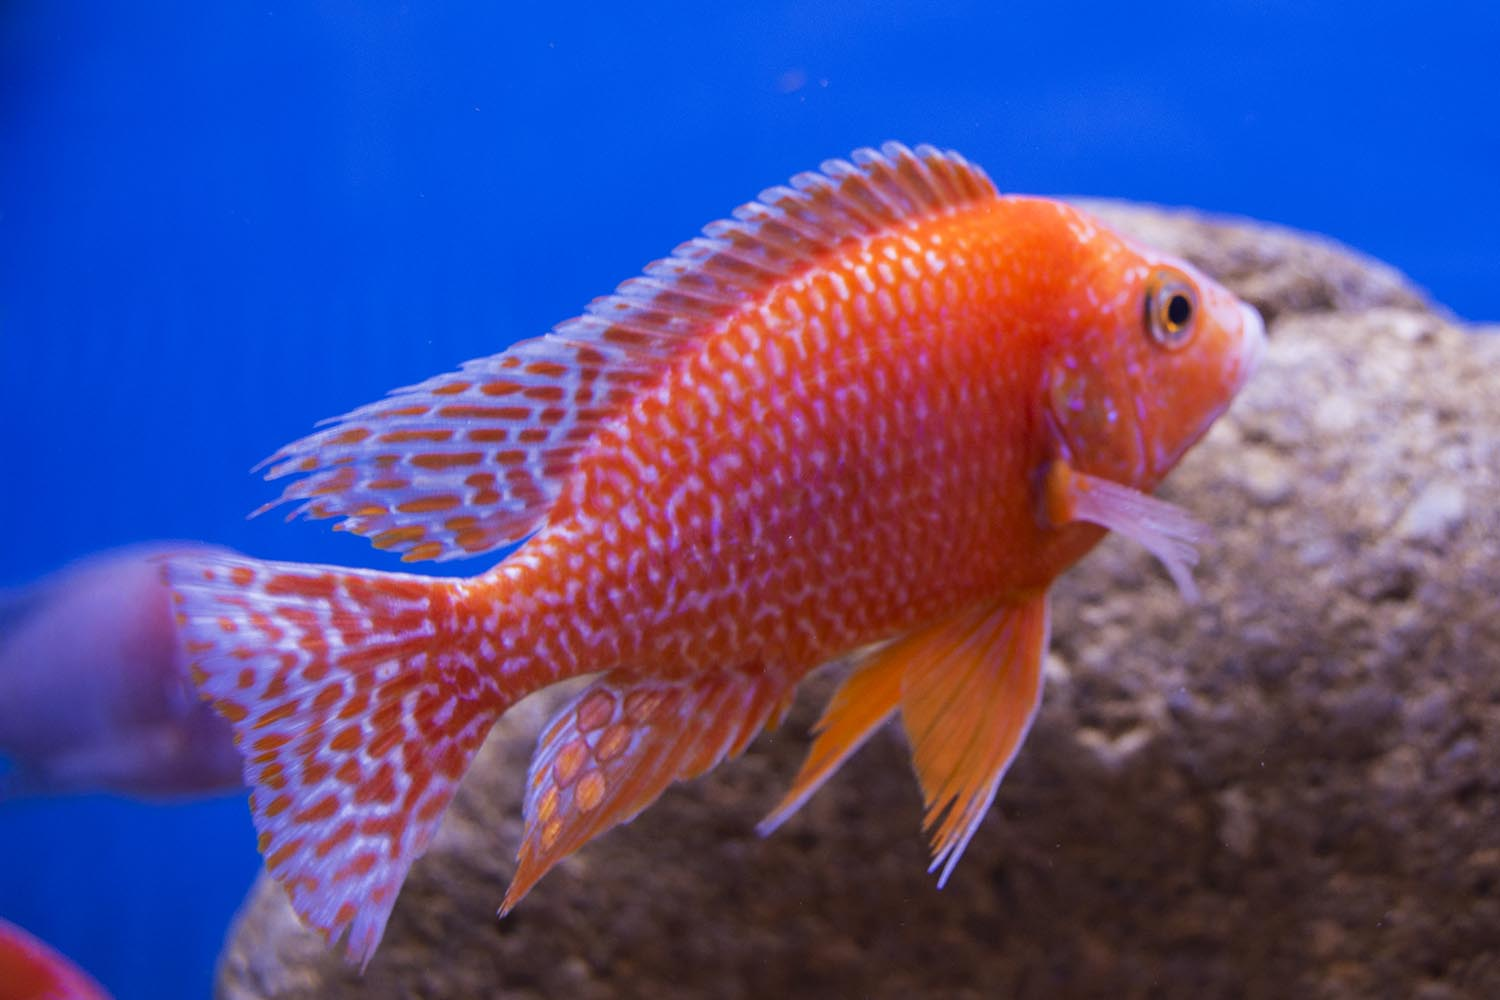 The Exceptional Fish of the 2017 Global Pet Expo